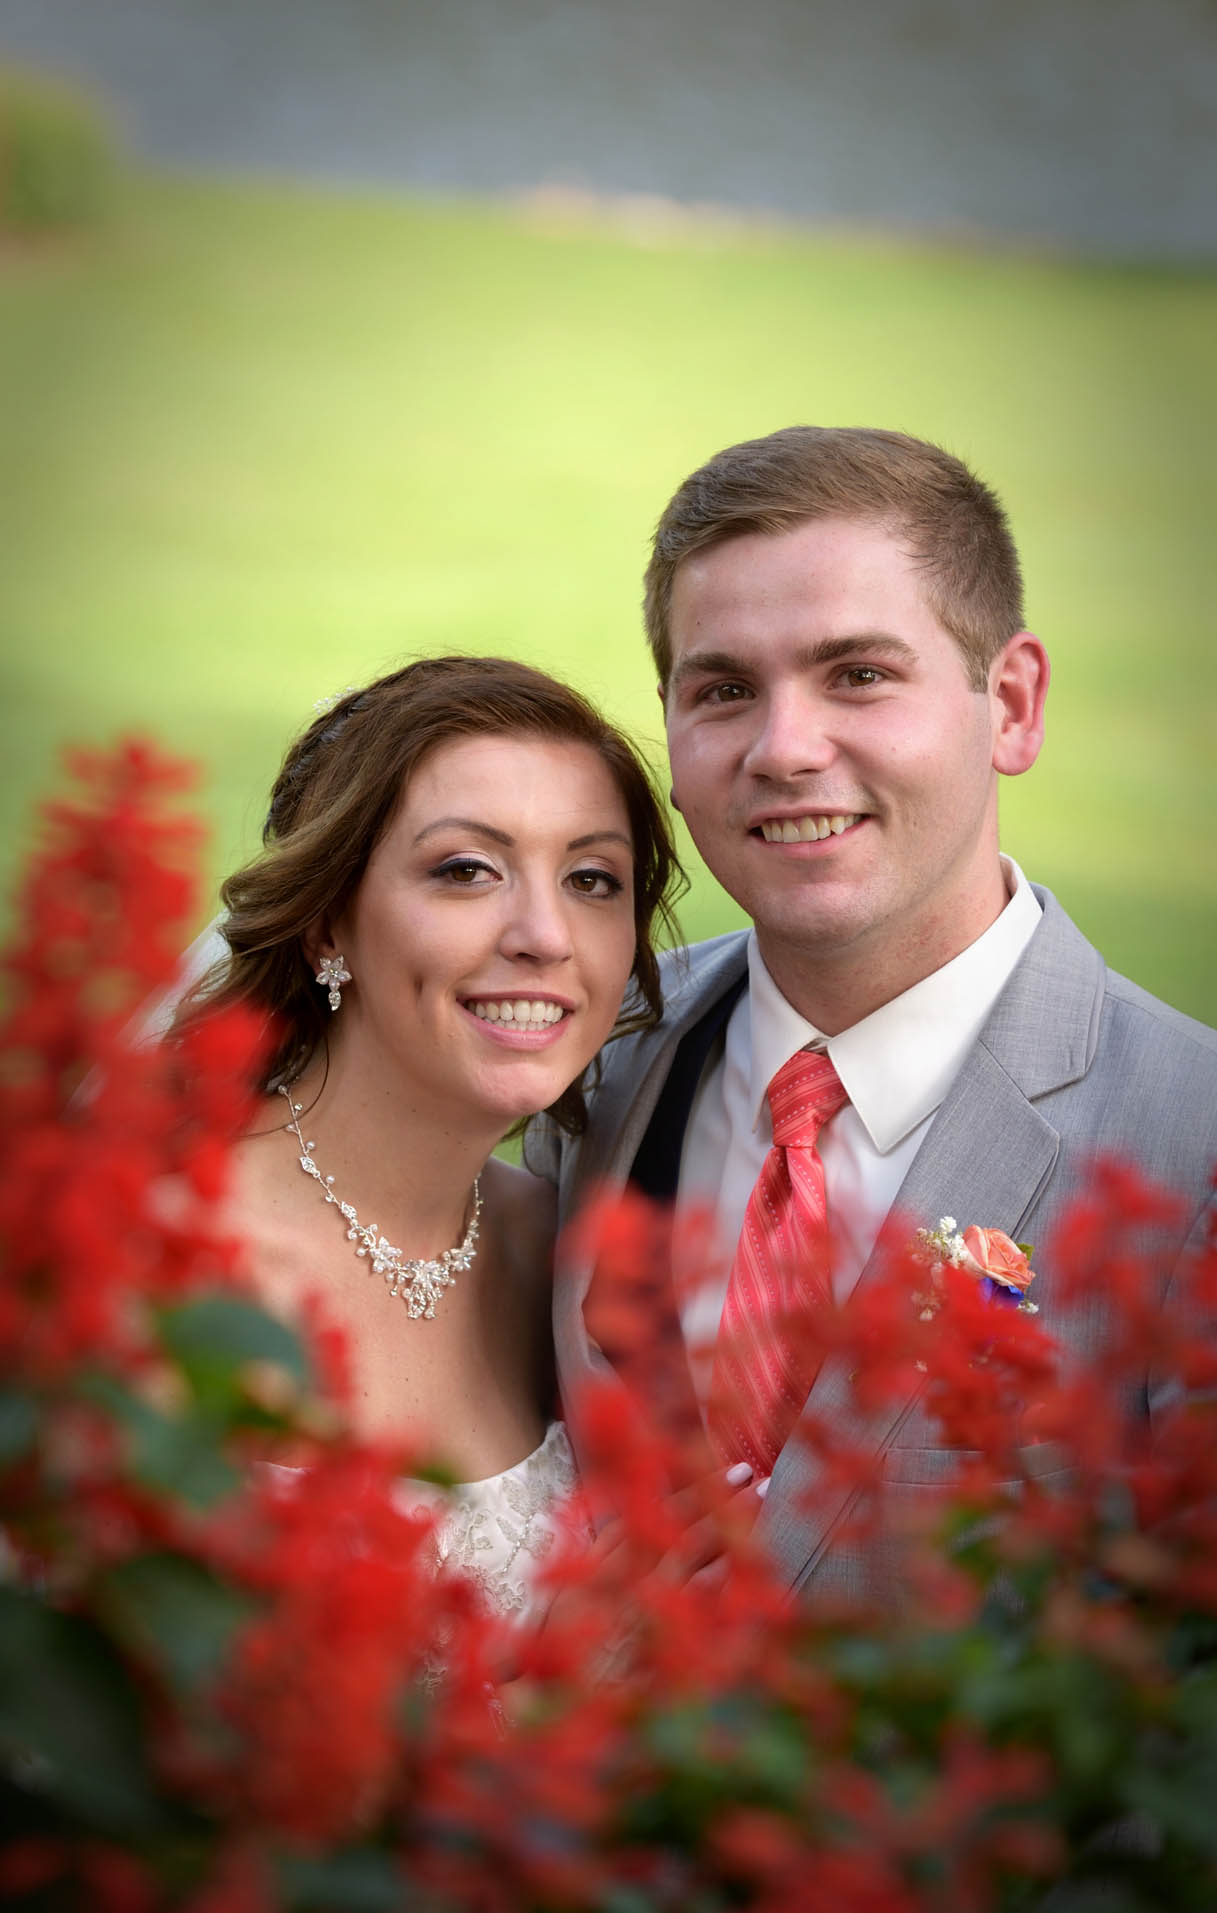 wedd photographer in copley oh